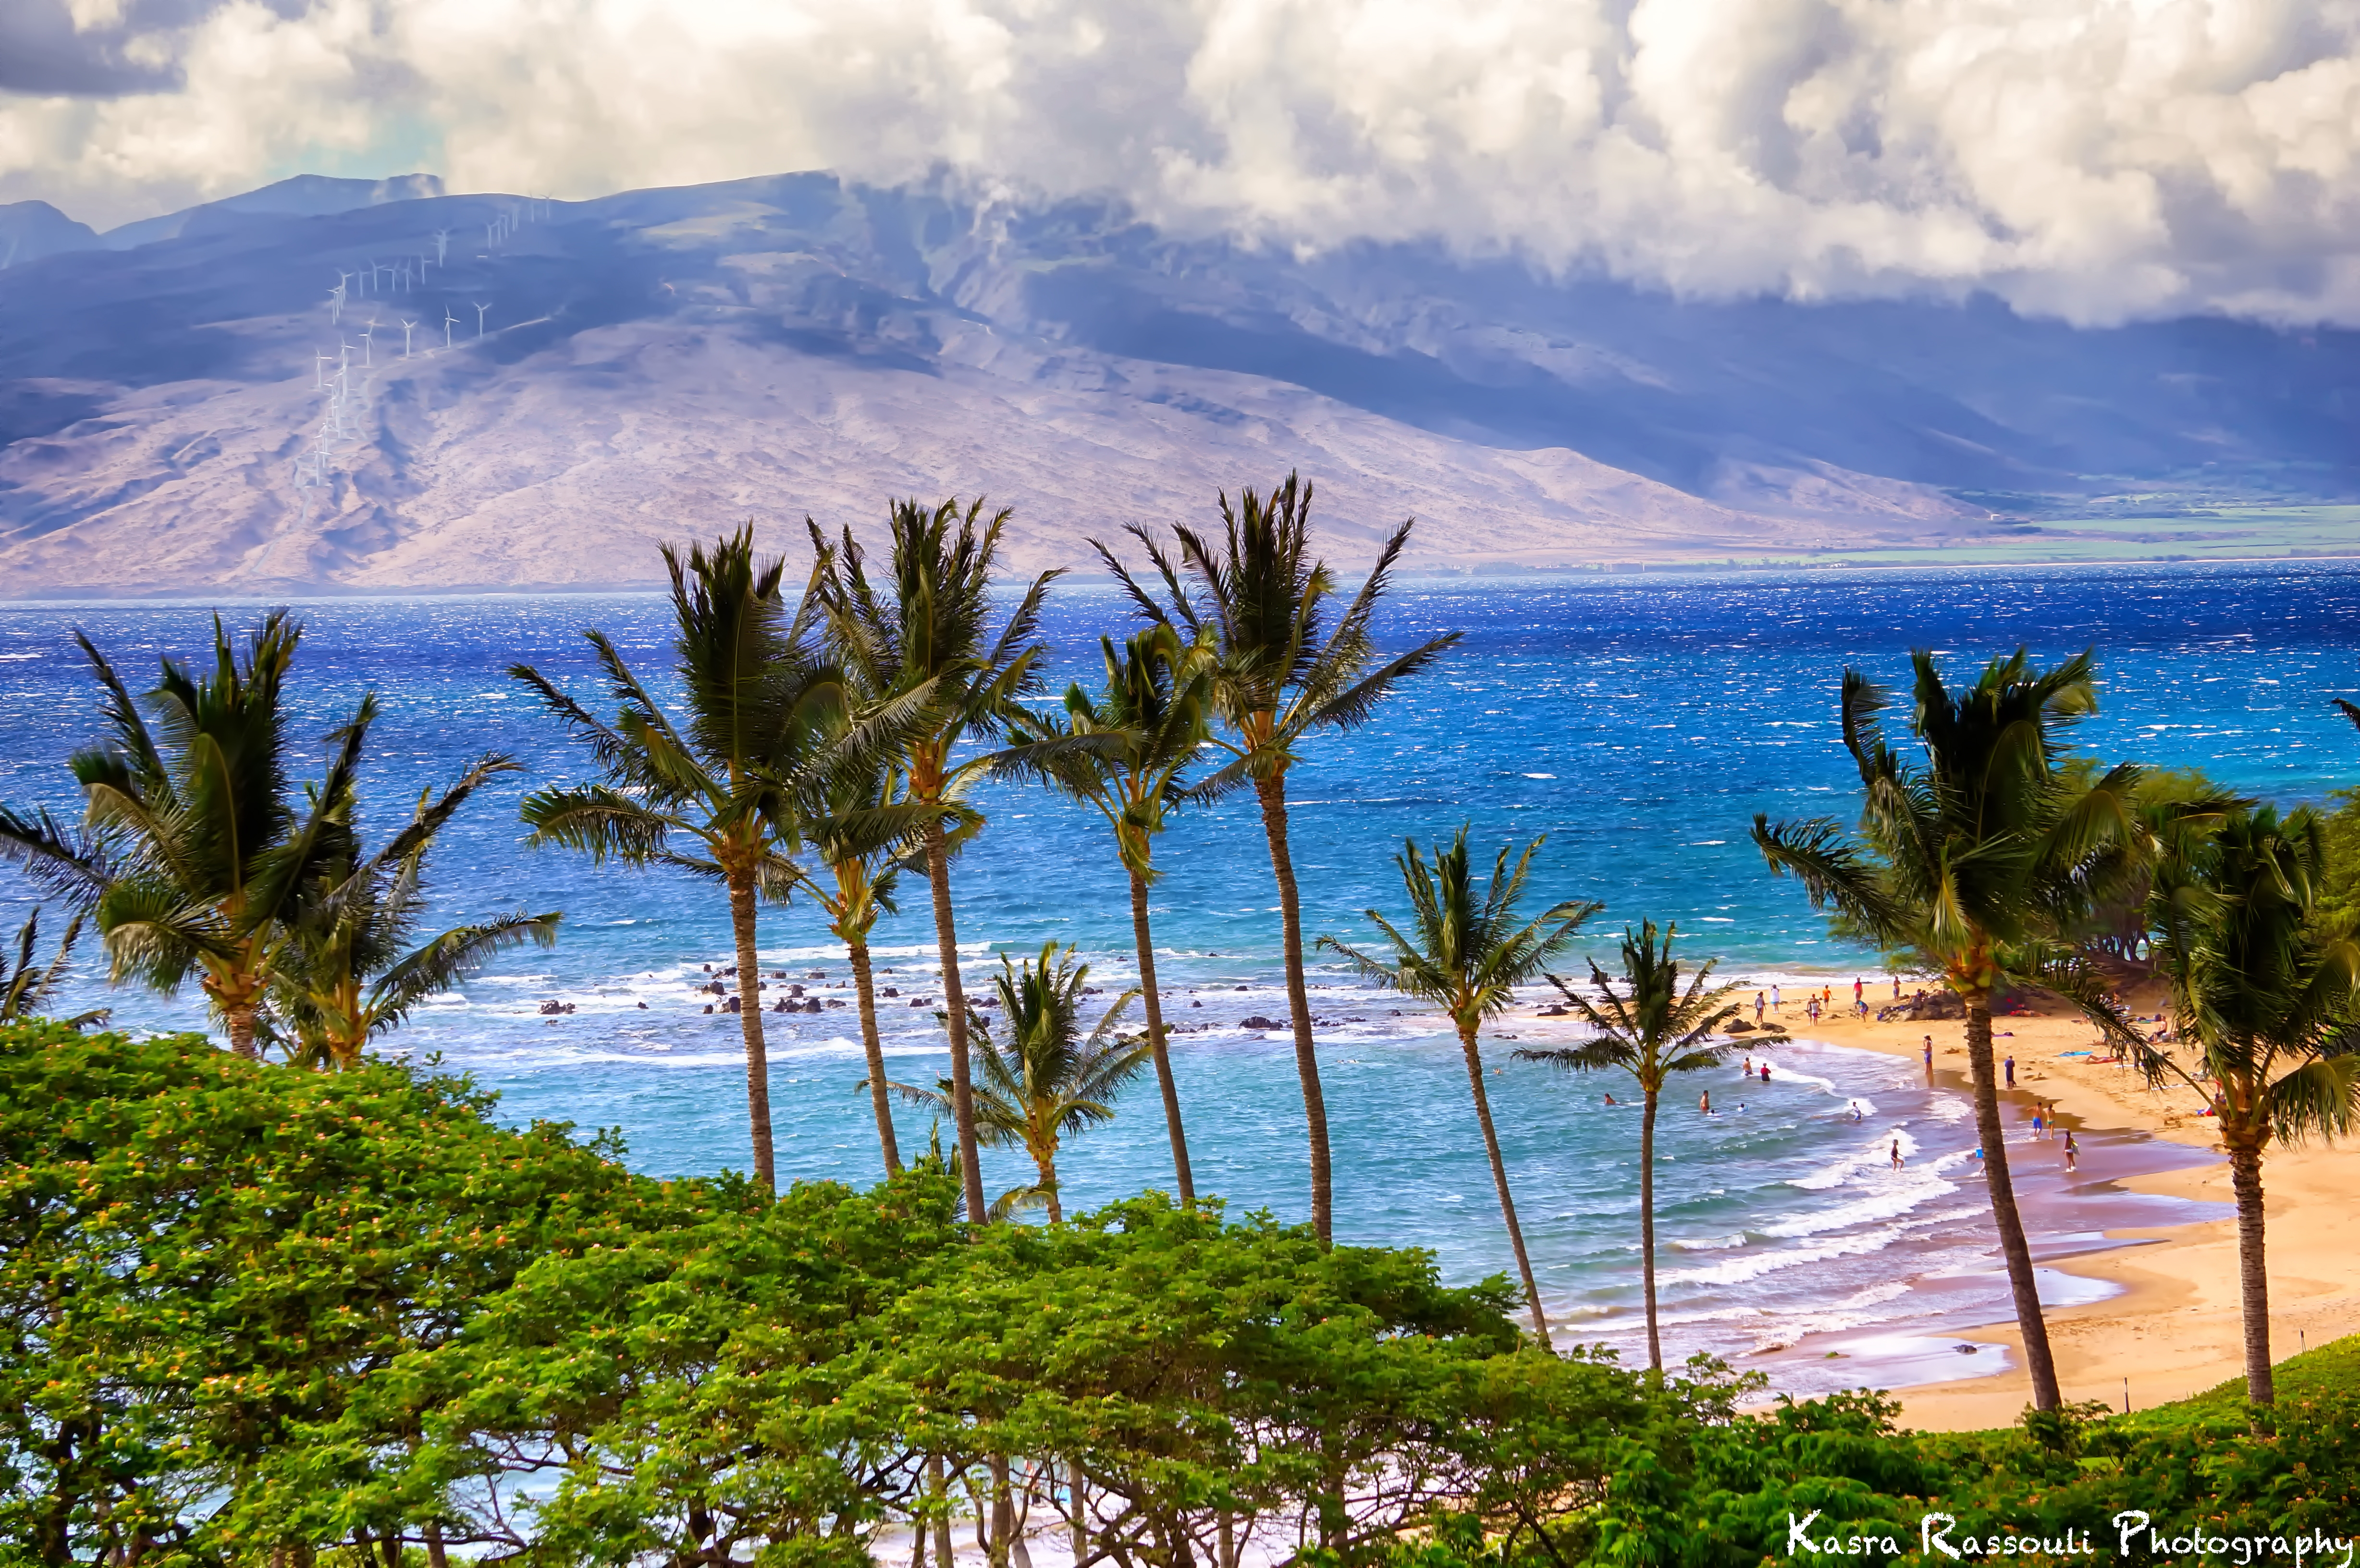 115049 download wallpaper Nature, Sea, Beach, Mountains, Palms screensavers and pictures for free